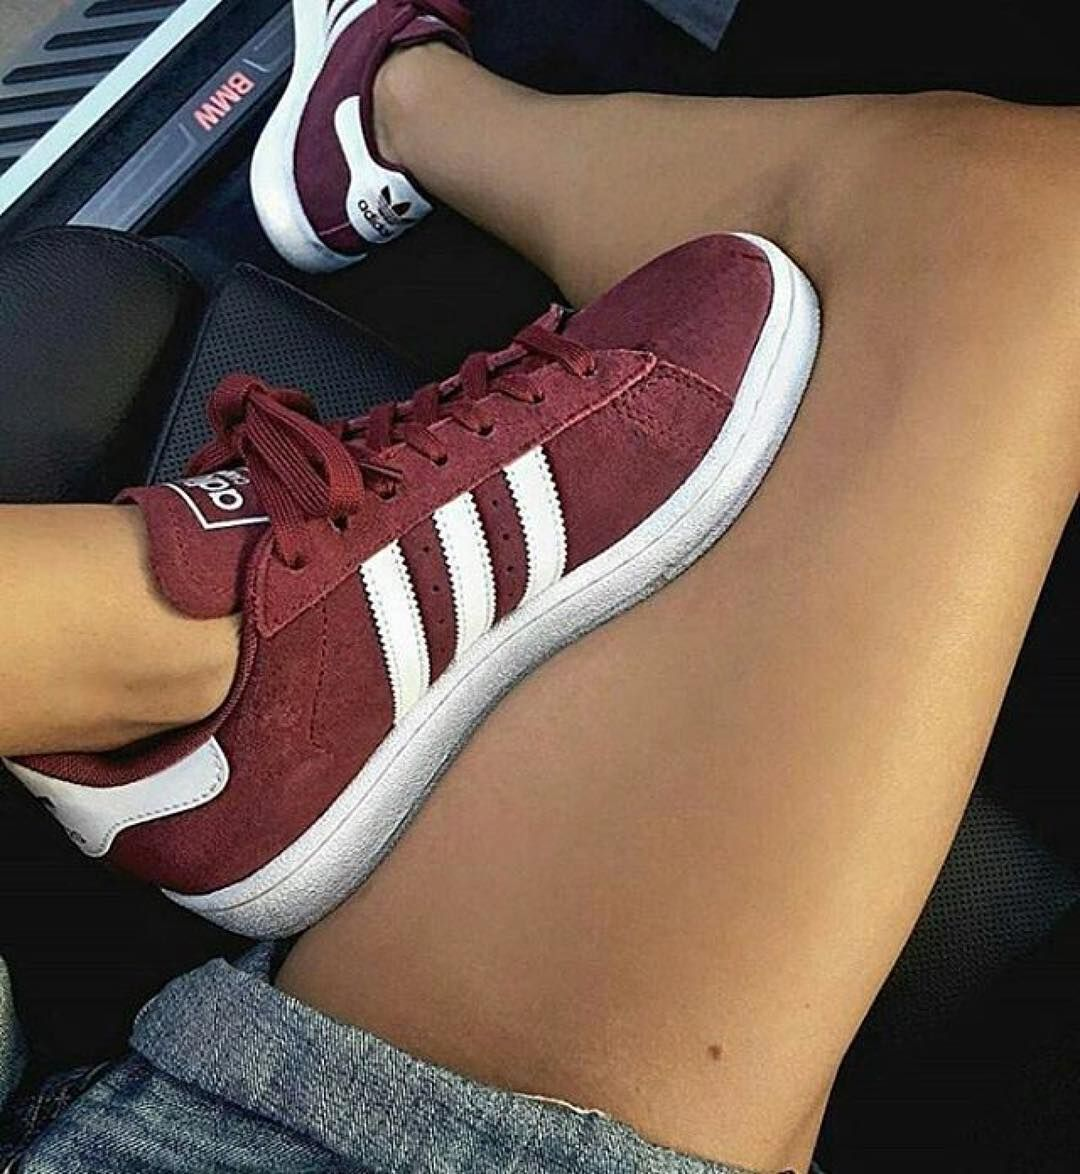 adidas #shoes Sneakers women - Adidas